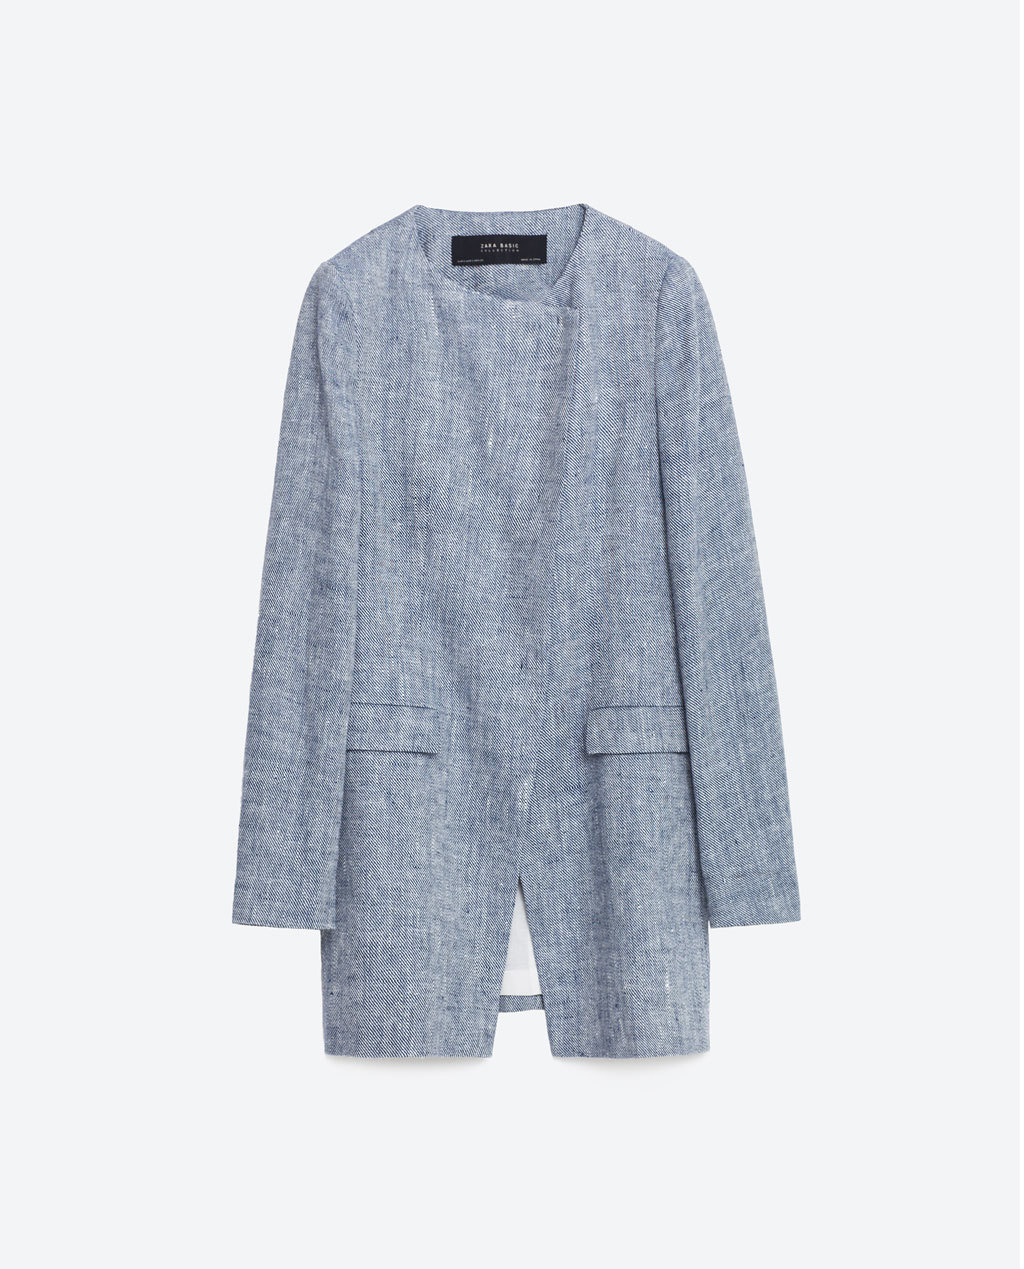 Linen Blazer - style: single breasted blazer; collar: round collar/collarless; length: below the bottom; secondary colour: white; predominant colour: pale blue; occasions: casual, creative work; fit: straight cut (boxy); fibres: linen - 100%; hip detail: added detail/embellishment at hip; sleeve length: long sleeve; sleeve style: standard; collar break: high; pattern type: fabric; pattern size: light/subtle; texture group: woven light midweight; pattern: marl; season: s/s 2016